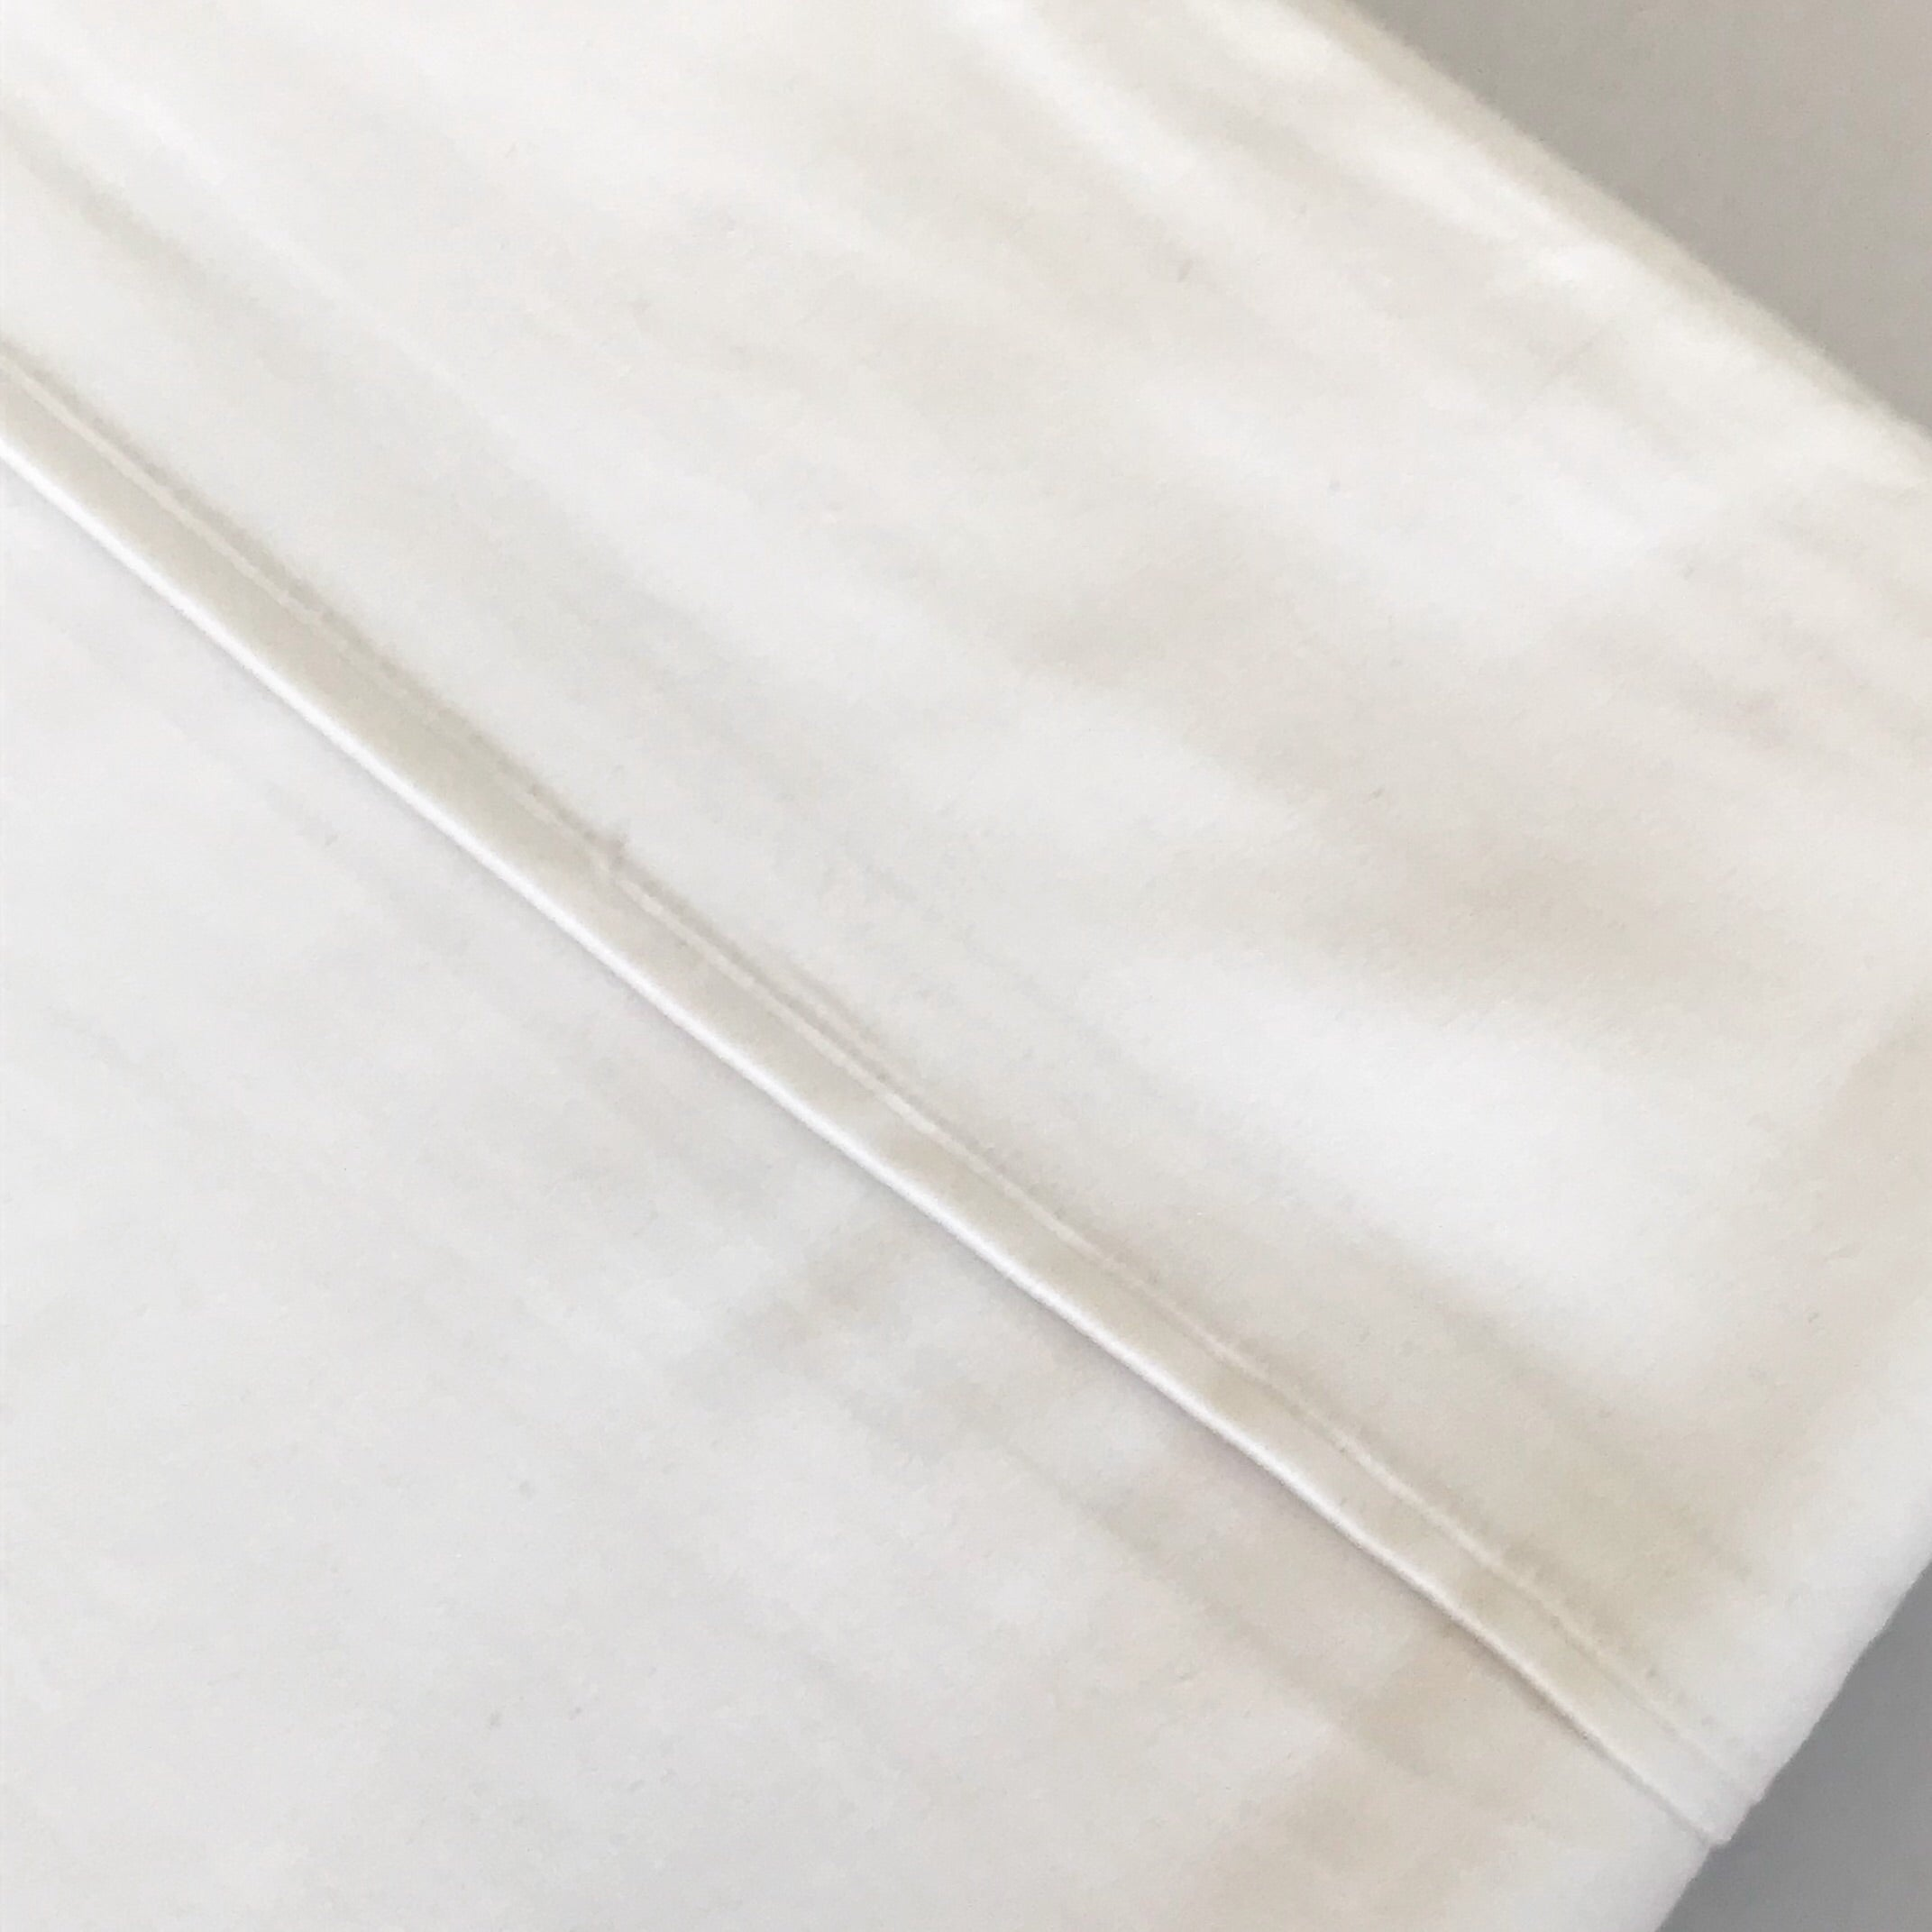 Cotton Sateen Sheet Sets - White - Adult Bedding $109.95 - My House Loves